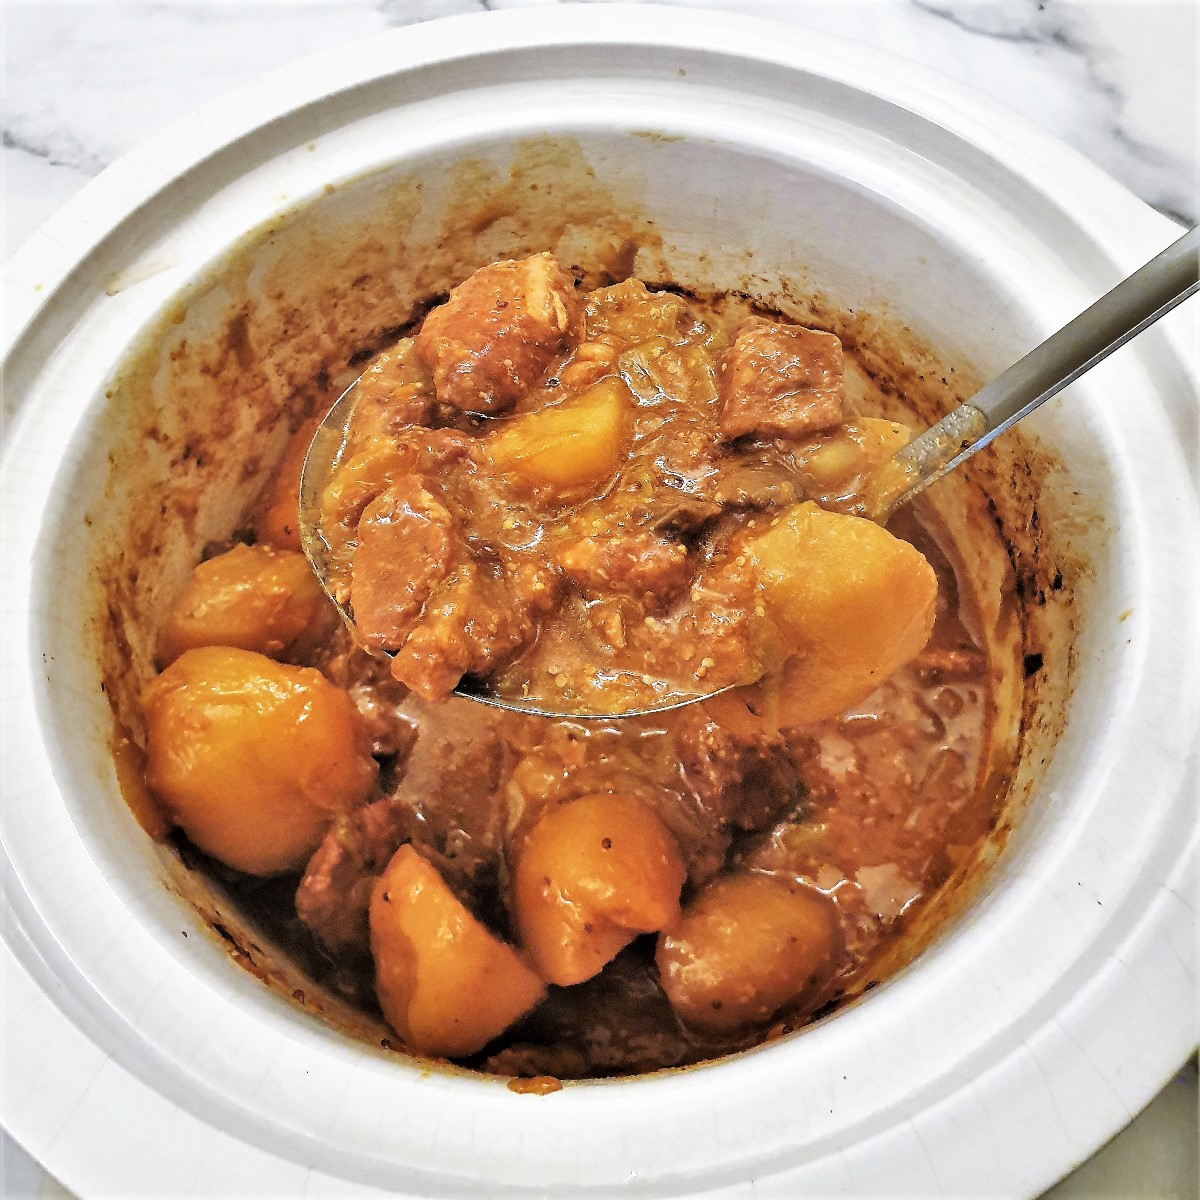 A ladle of honey mushroom pork casserole being lifted from th slow cooker.